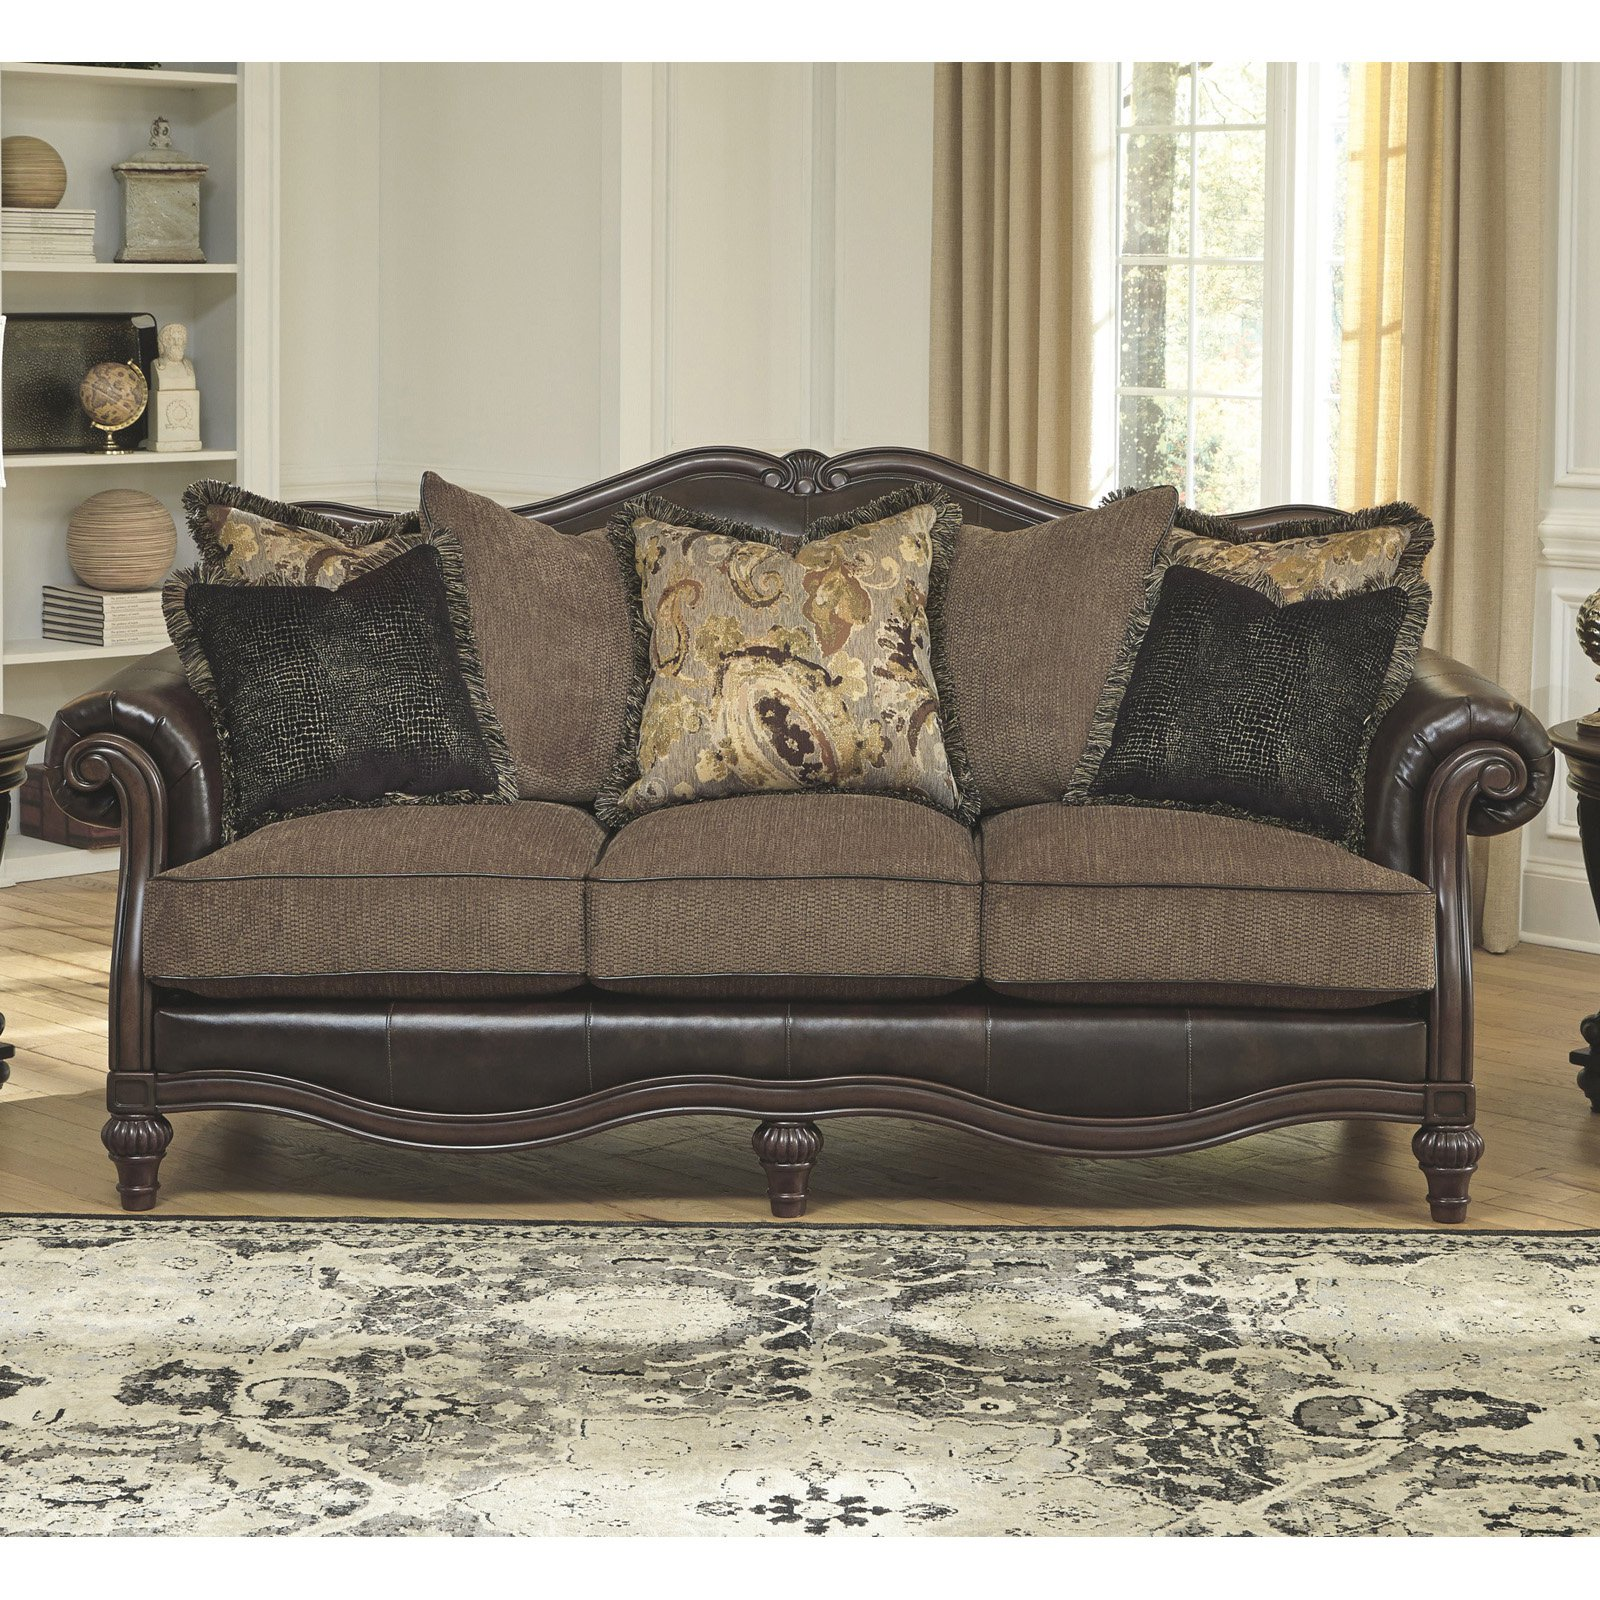 durablend sofa microfiber sets signature design by ashley winnsboro walmart com